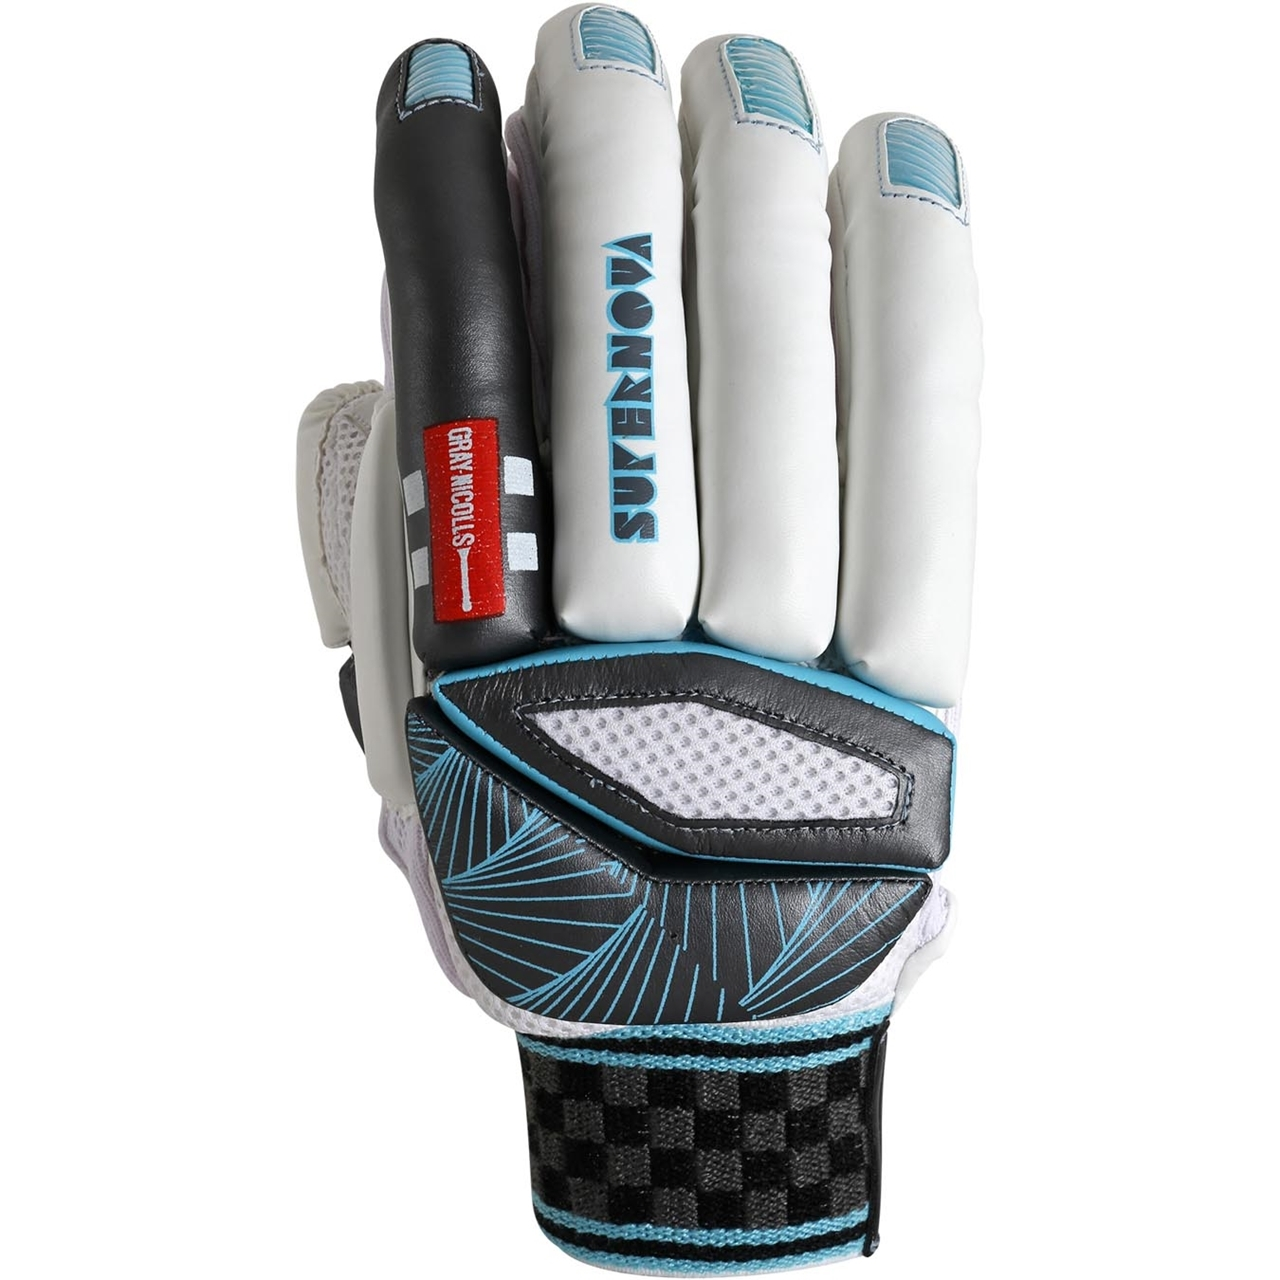 Picture of GN GLOVE SUPERNOVA 500 - LH Only